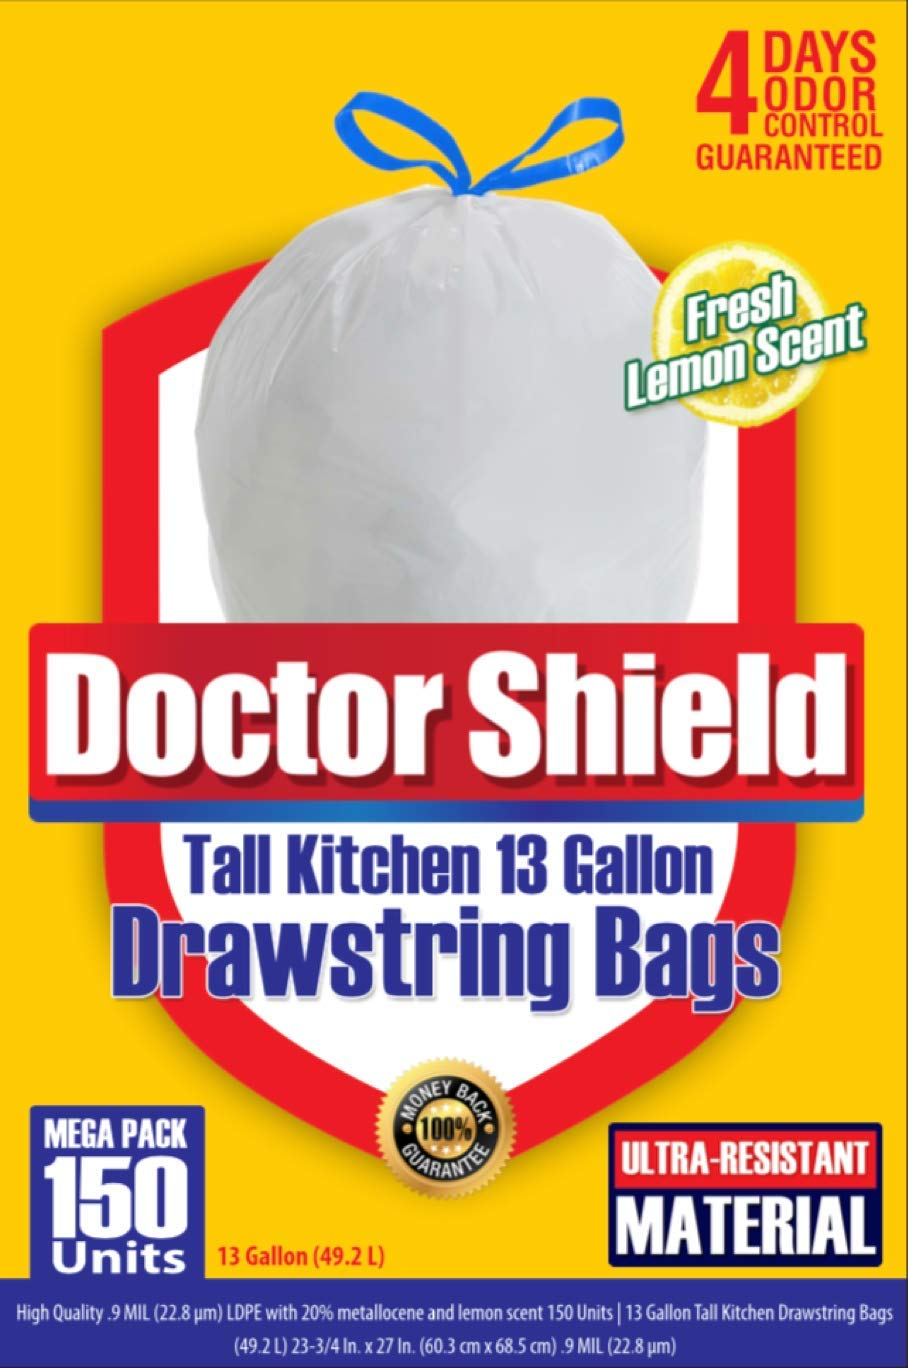 13 Gallon Trash Bag Garbage Bag Kitchen Trash Can Liners for Dumpster Bin 150 Count - Strong White Drawstring Odor Shield Bags for Refuse Disposal